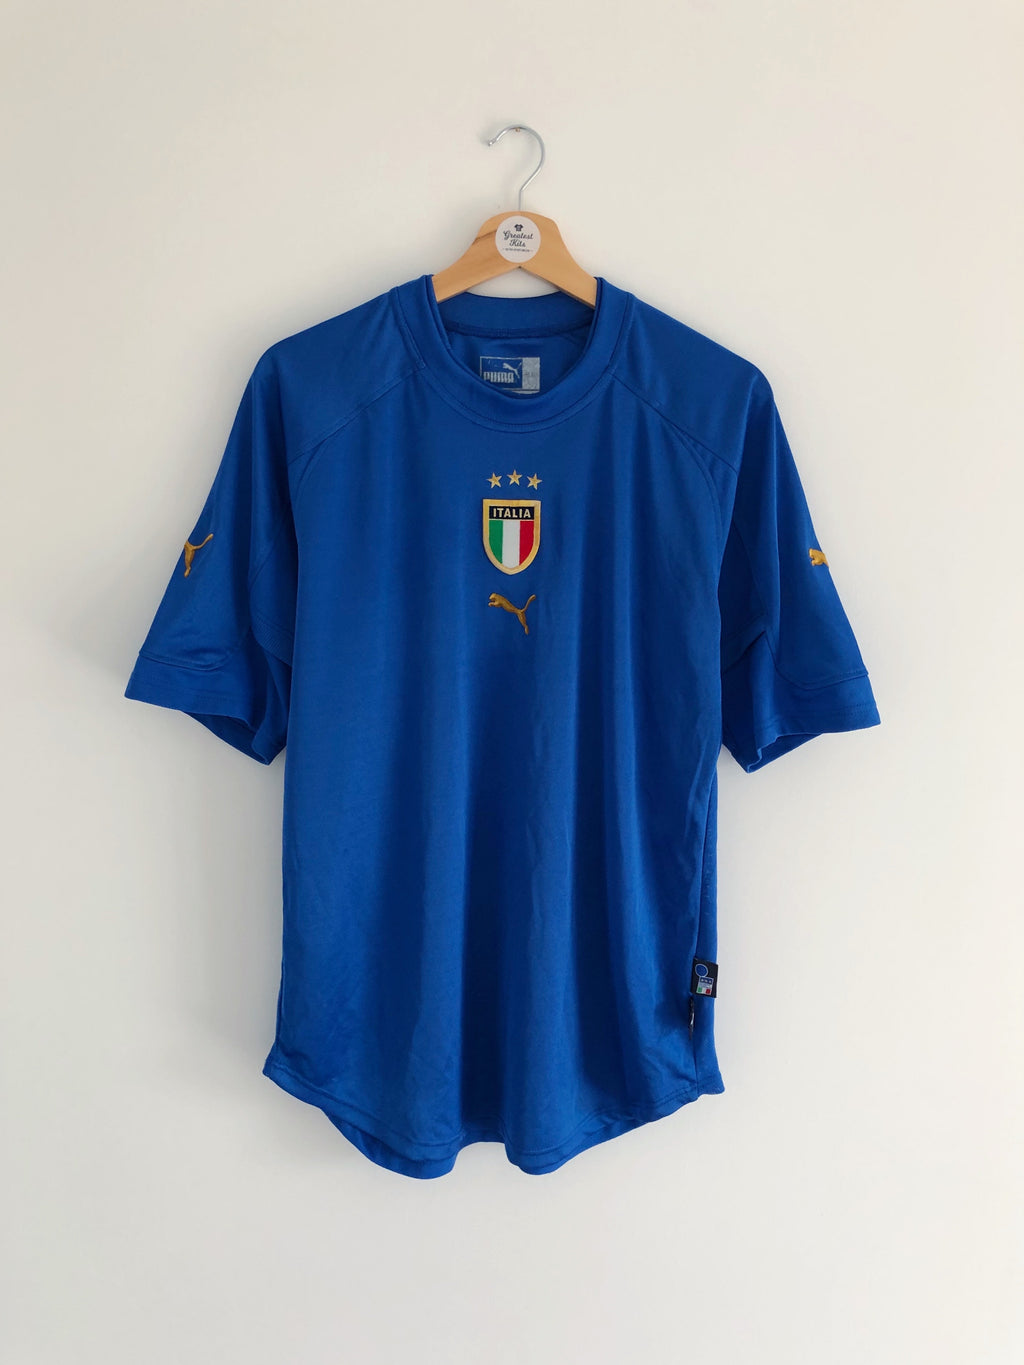 2004/06 Italy Home Shirt (L) 8.5/10